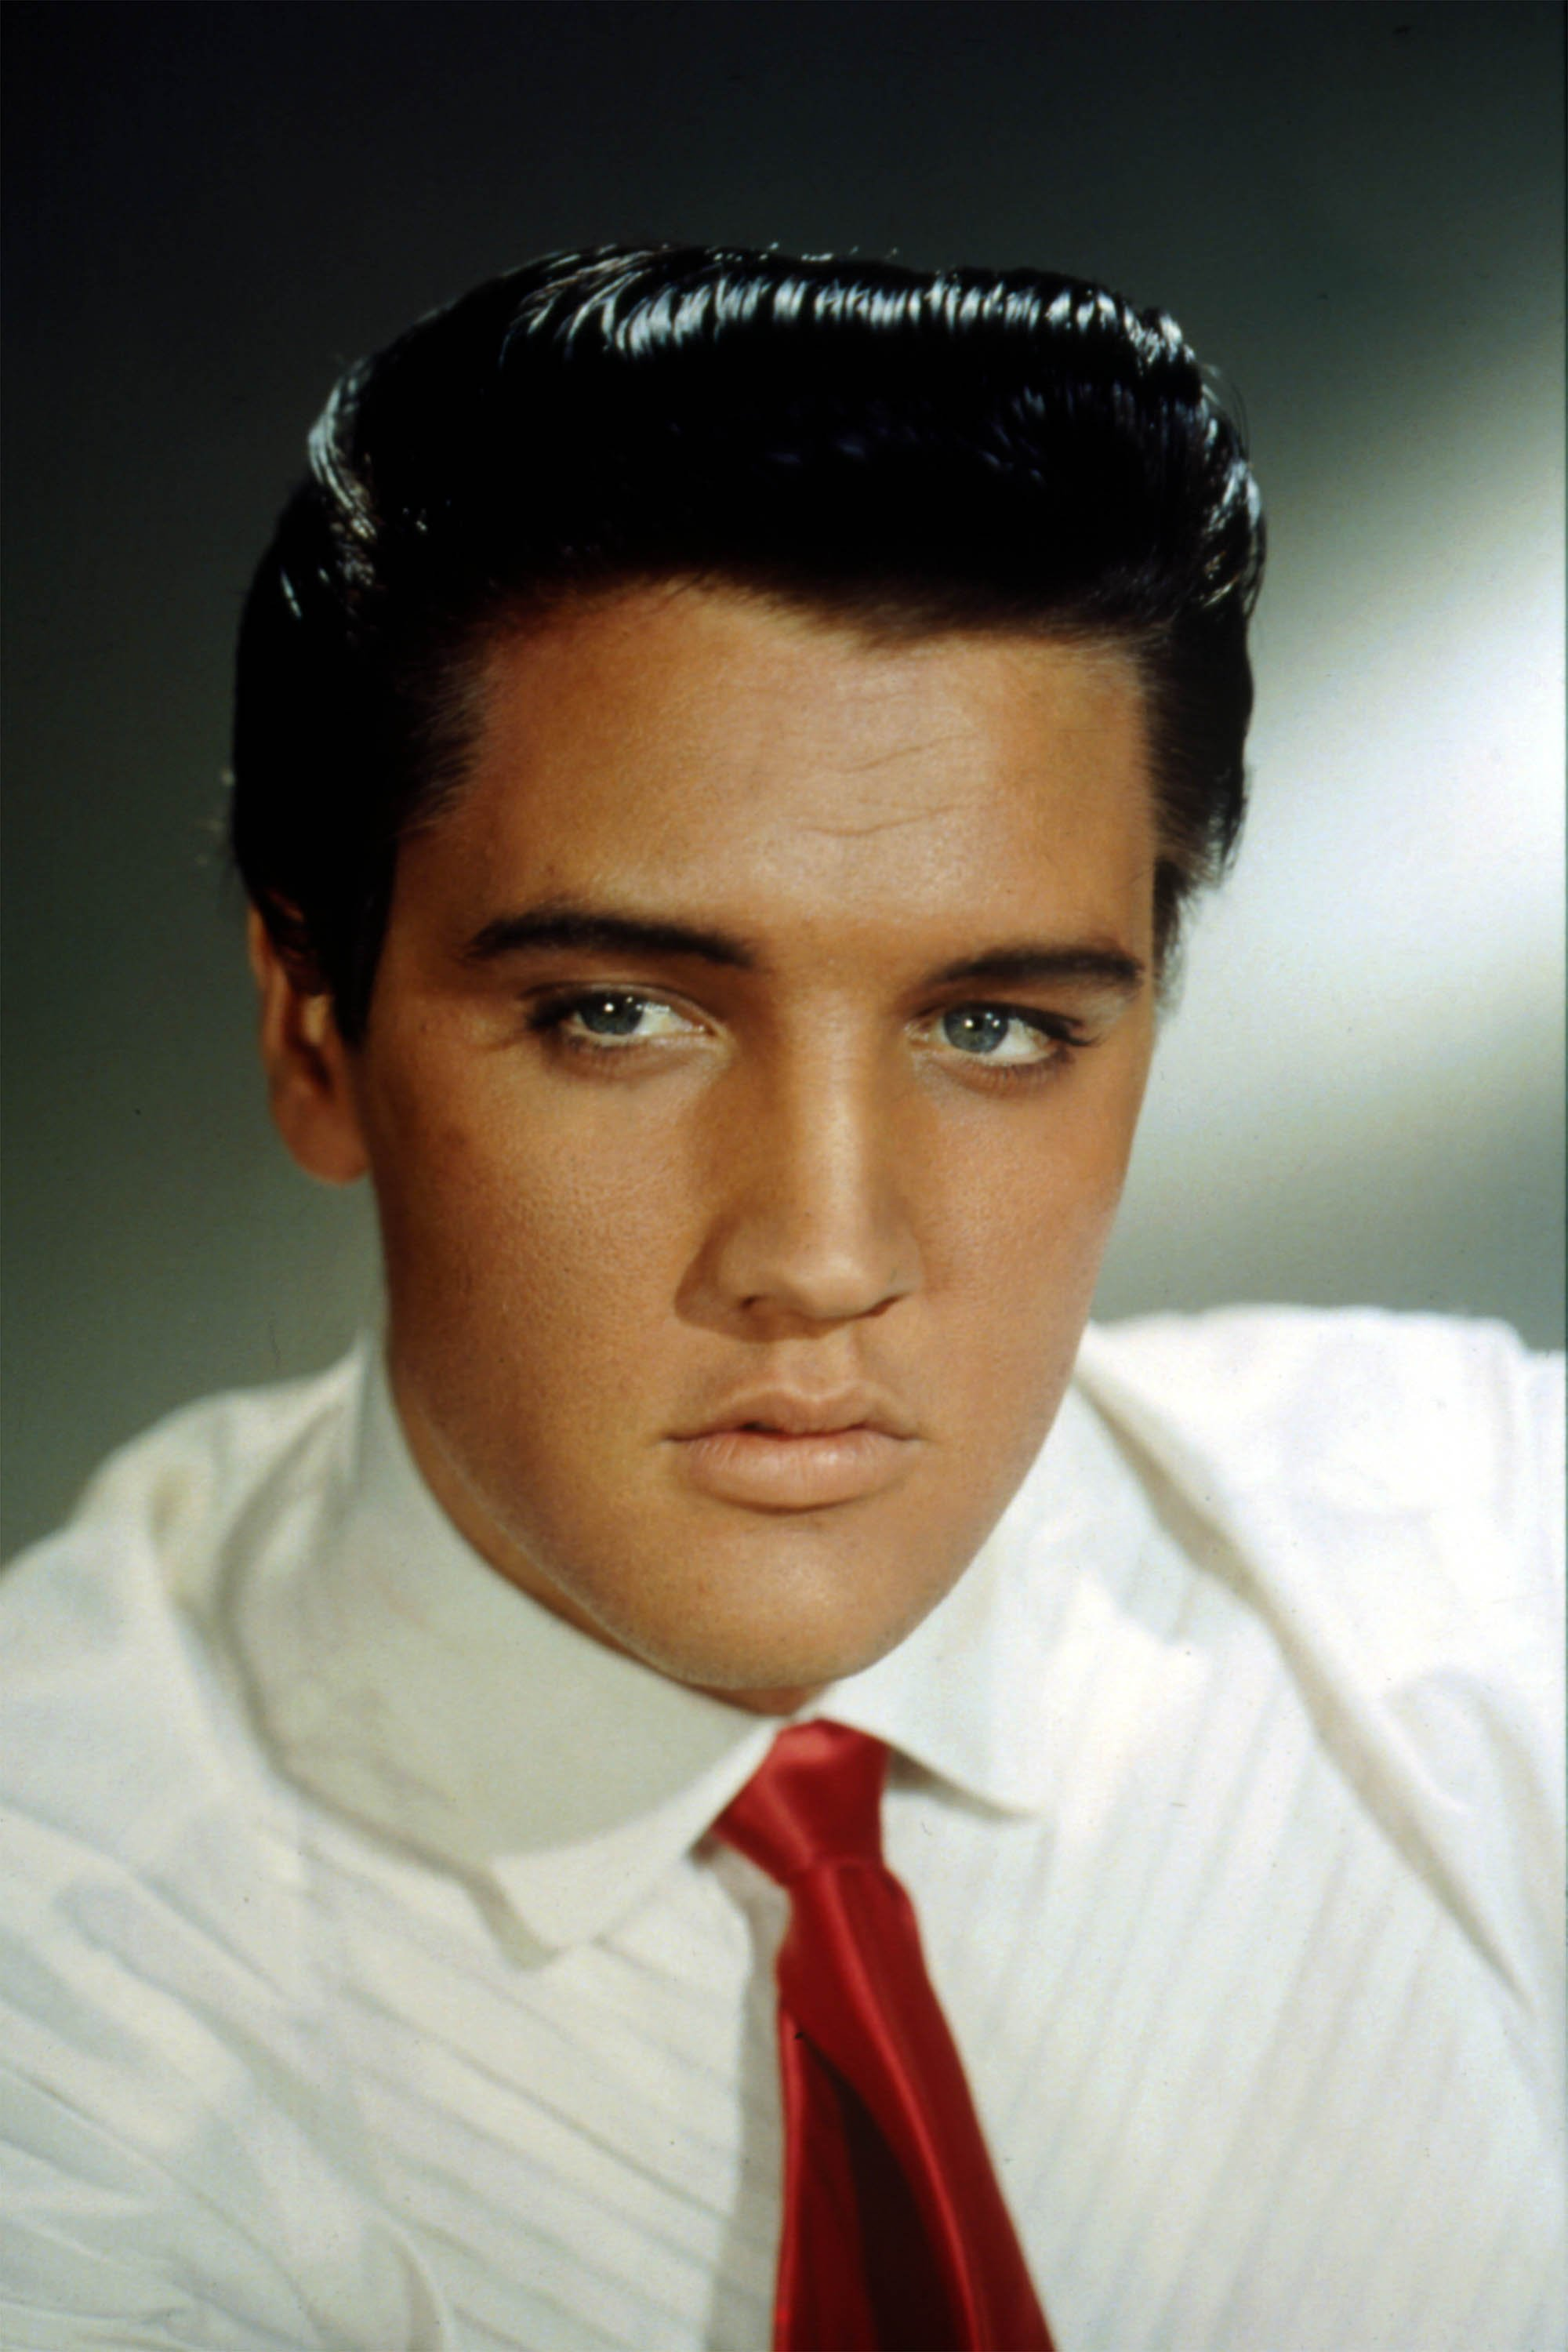 Image Credits: Getty Images | Elvis Presley would later suffer many health complications, one caused from dying his eyelashes